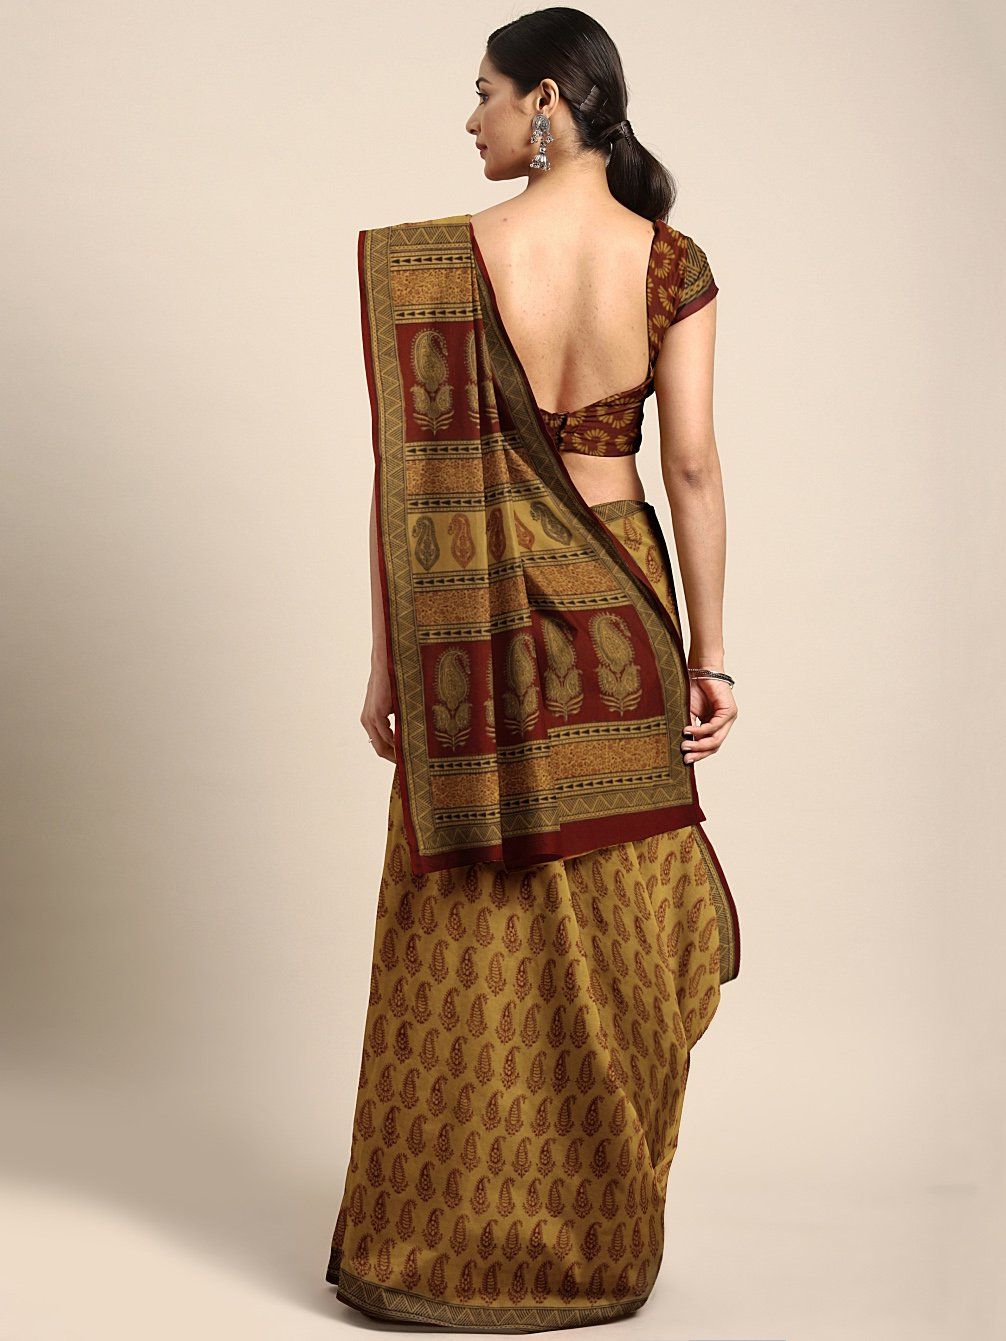 Mustard Maroon Handblock Print Bagh Saree-Saree-Kalakari India-MRBASA0026-Bagh, Cotton, Geographical Indication, Hand Blocks, Hand Crafted, Heritage Prints, Natural Dyes, Sarees, Sustainable Fabrics-[Linen,Ethnic,wear,Fashionista,Handloom,Handicraft,Indigo,blockprint,block,print,Cotton,Chanderi,Blue, latest,classy,party,bollywood,trendy,summer,style,traditional,formal,elegant,unique,style,hand,block,print, dabu,booti,gift,present,glamorous,affordable,collectible,Sari,Saree,printed, holi, Diwali,